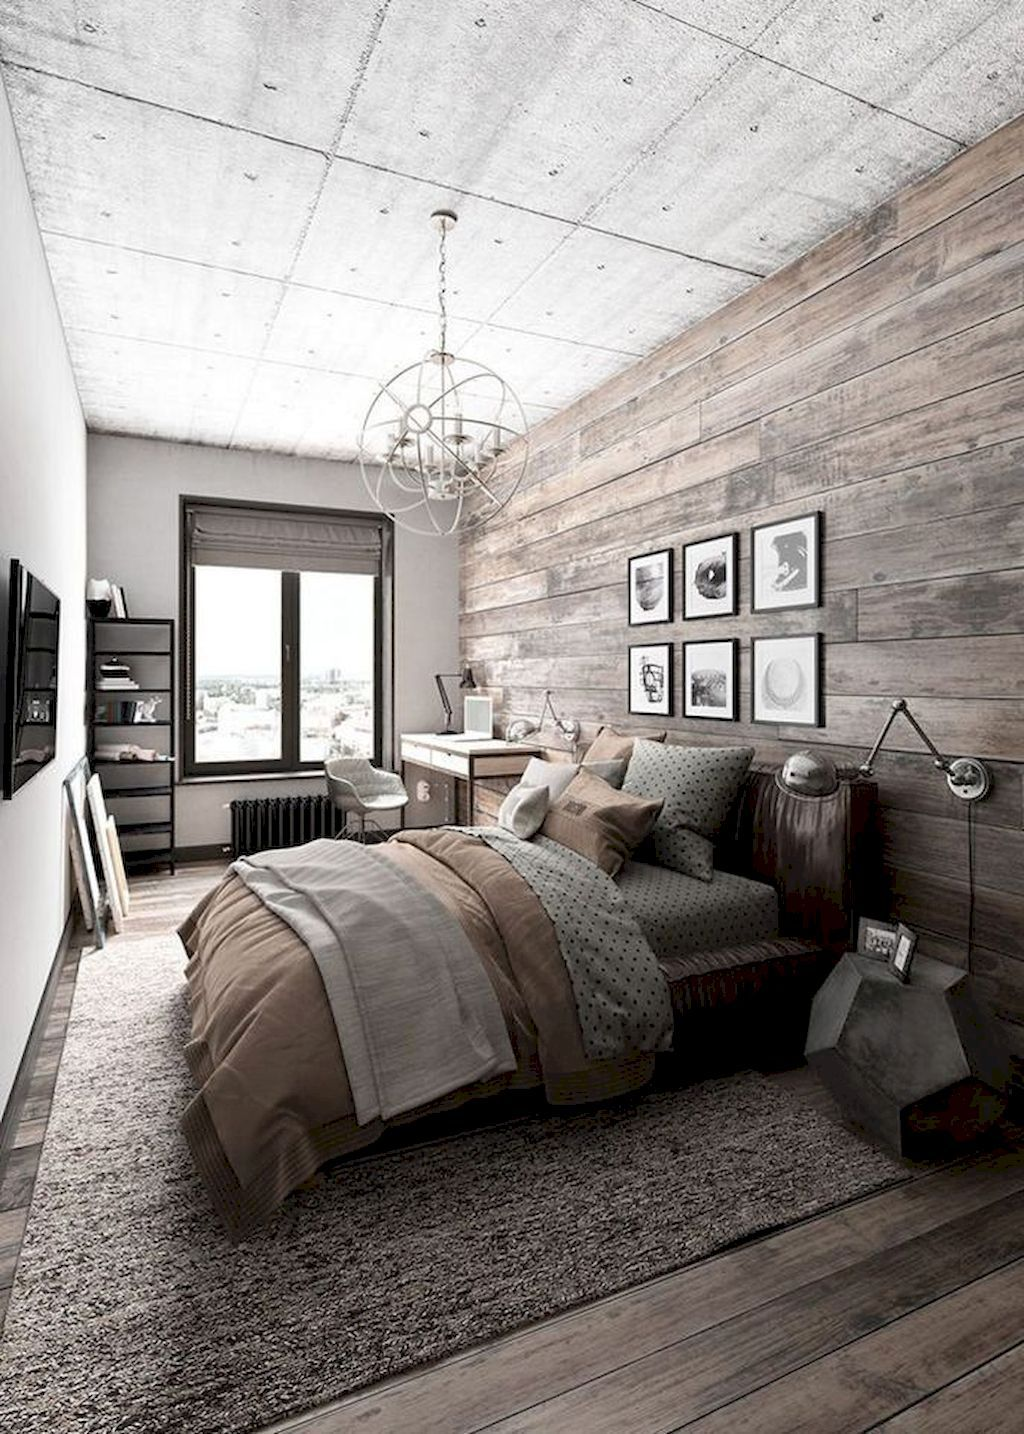 farmhouse room decor rustic farmhouse bedroom bedroom decor pinterest farmhouse Farmhouse-Rustic-Master-Bedroom-Ideas-3.jpg 1,024×1,434